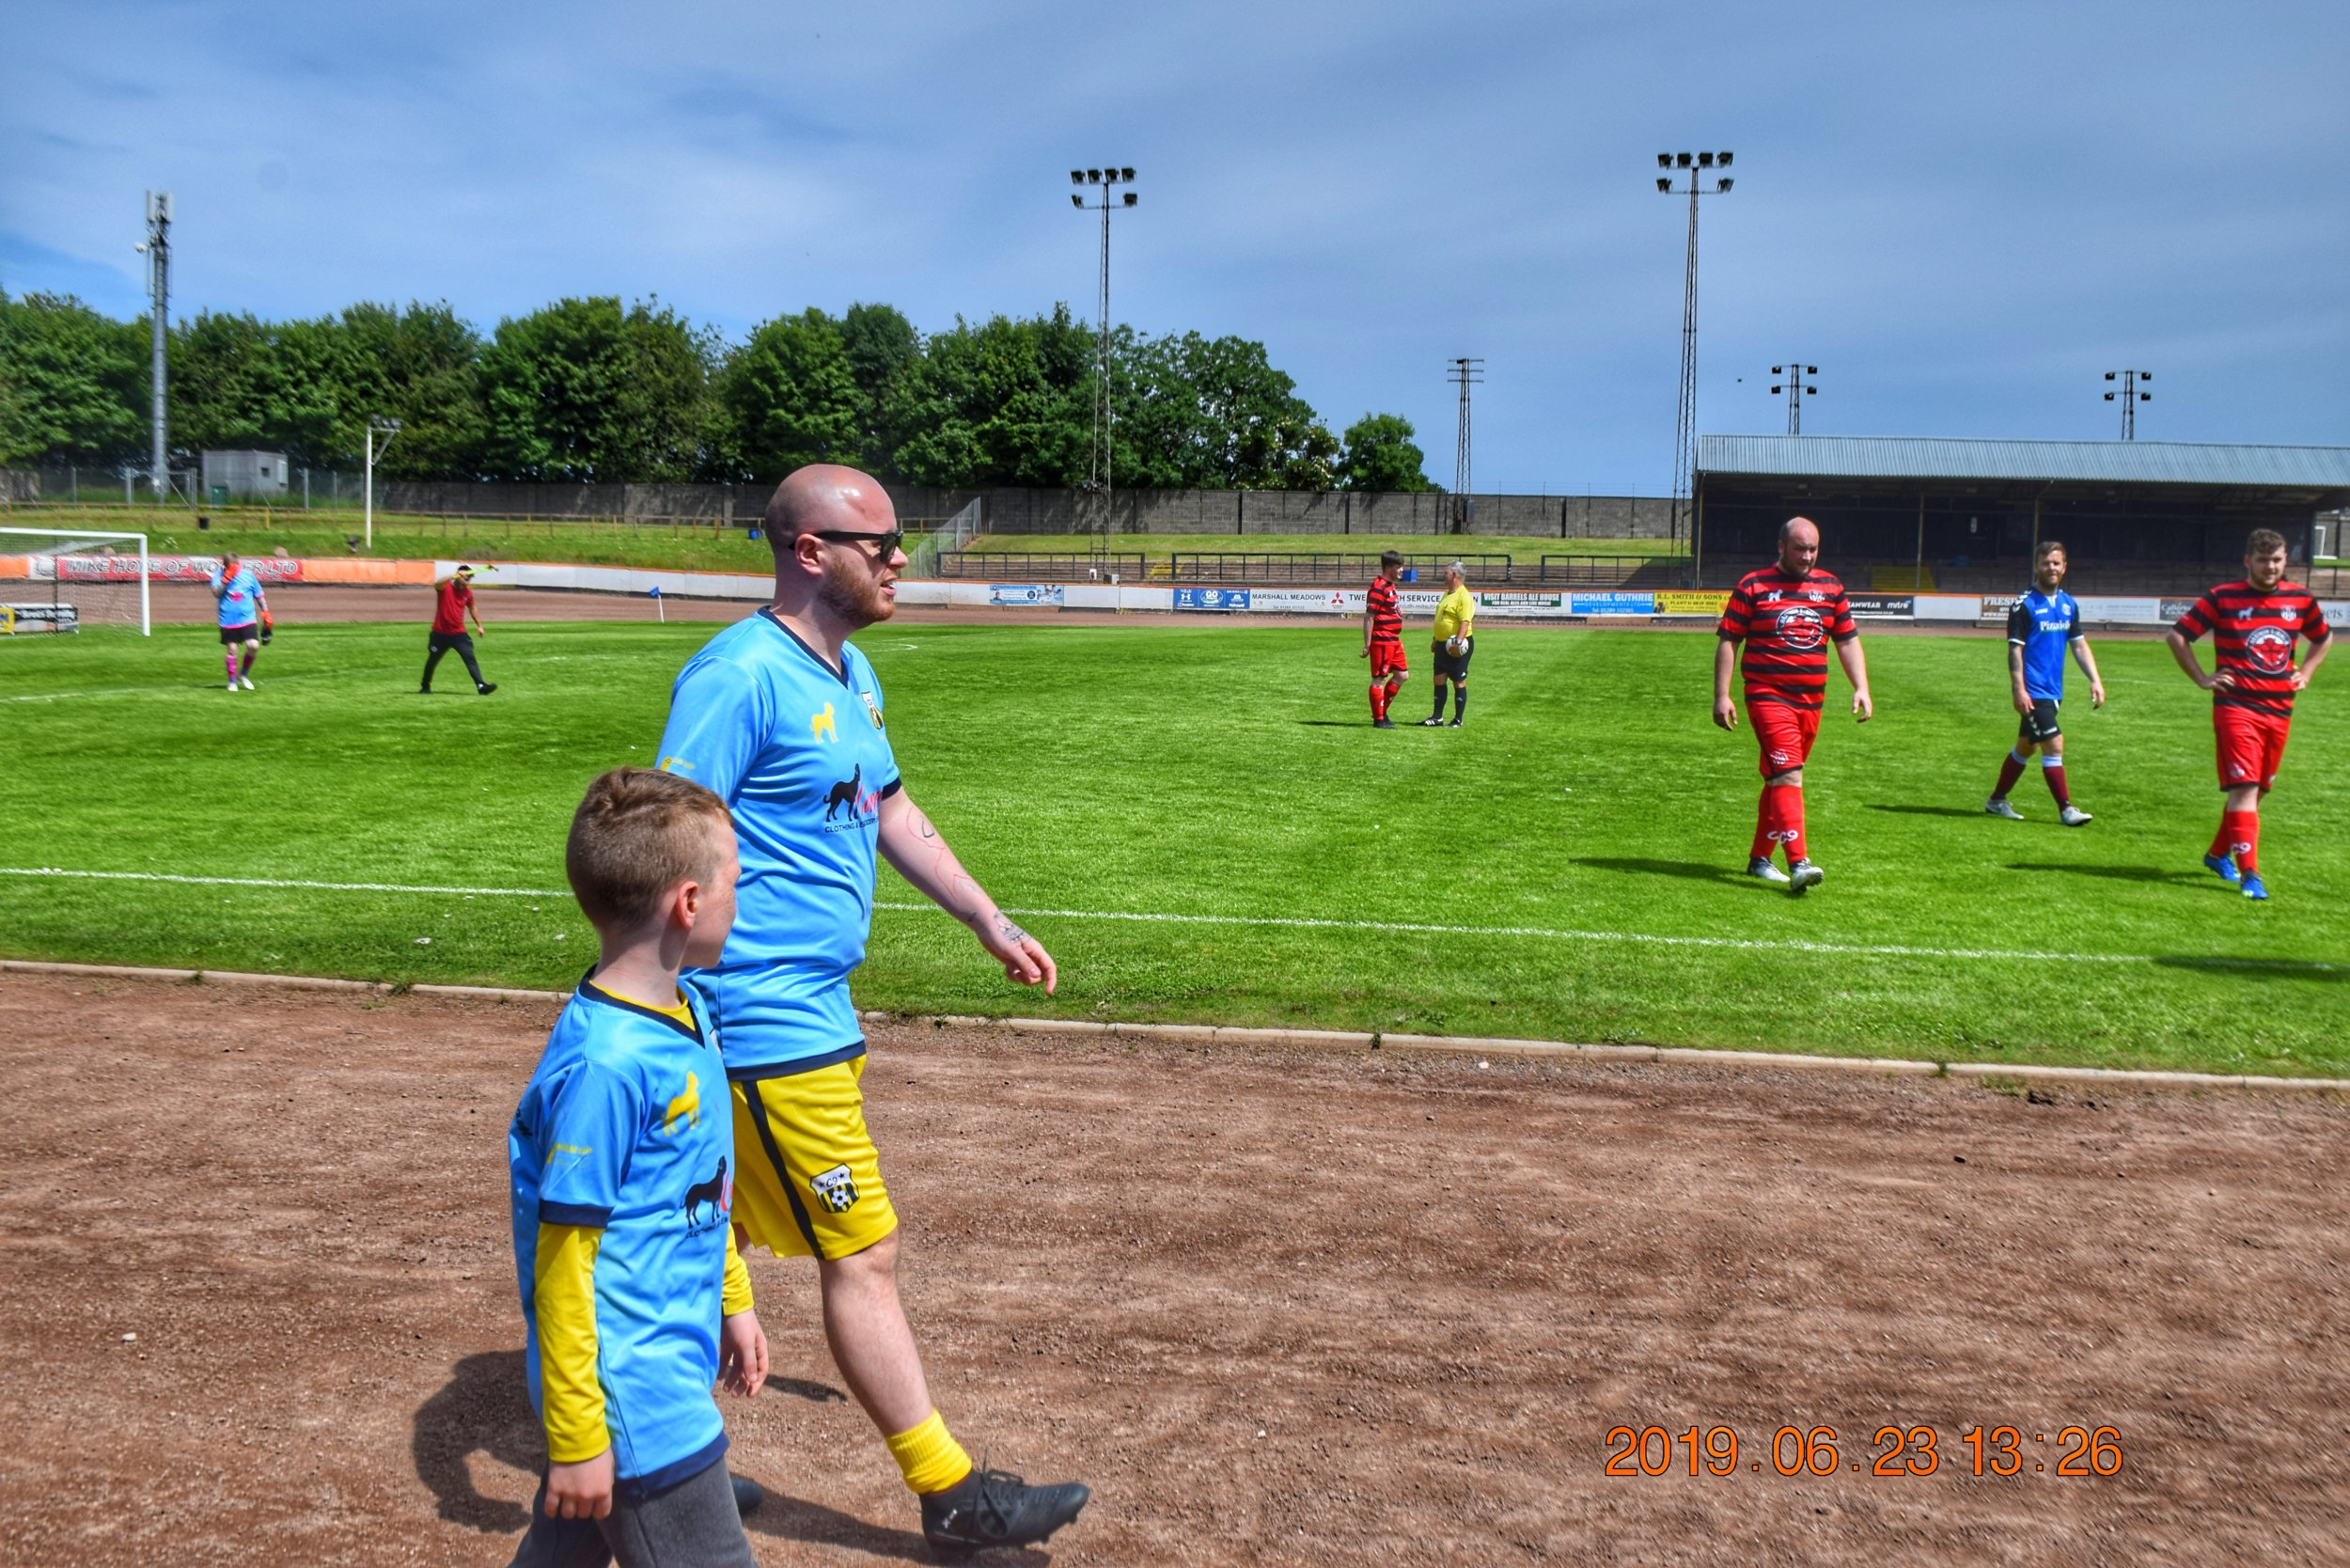 The 2 Colin's during the Berwick & Borders Charity Cup - 23/06/19